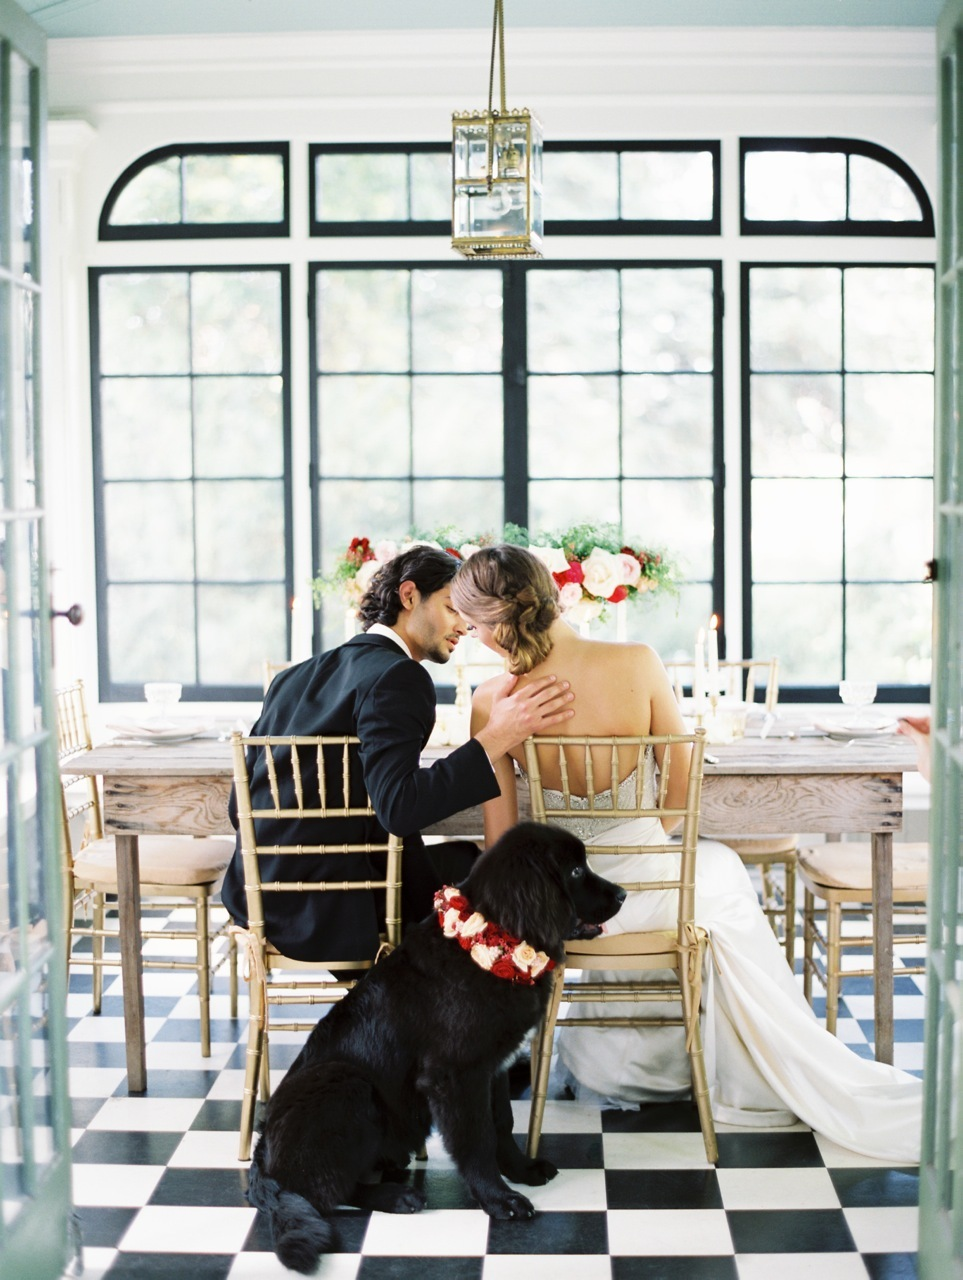 Reception, Flowers & Decor, Romantic, Dog, Couple, Love poems styled wedding